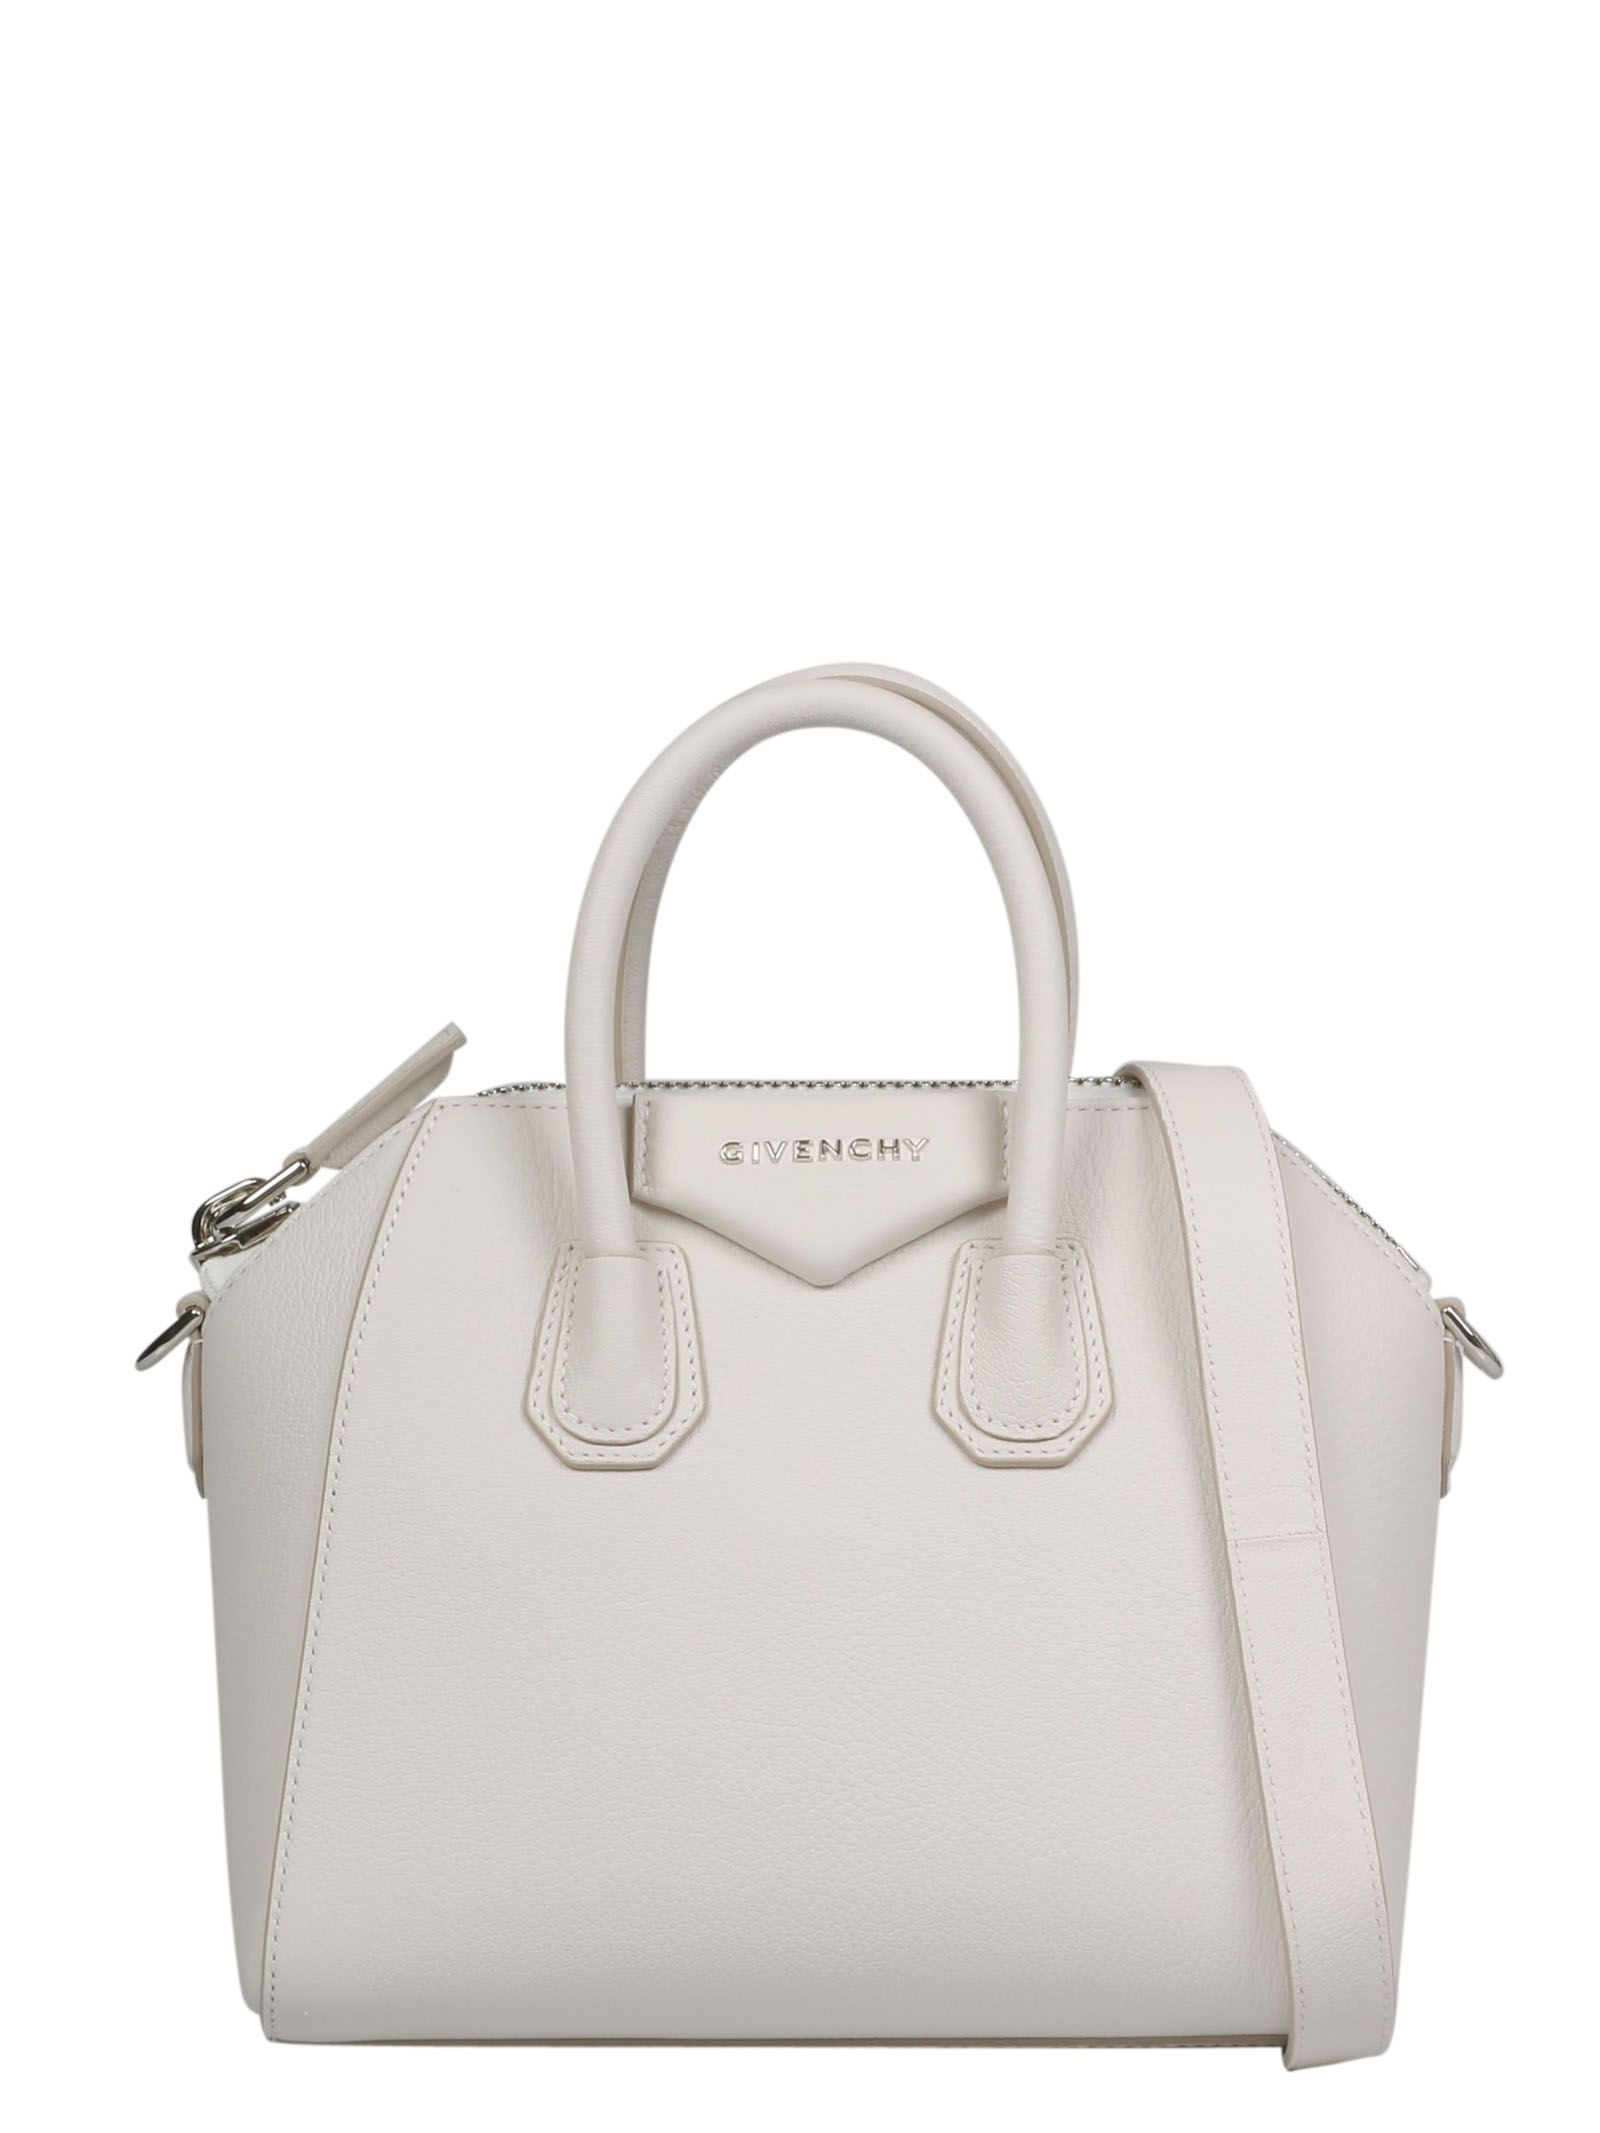 8582bd50501f Givenchy Givenchy Mini Antigona Tote - Basic - 10810689